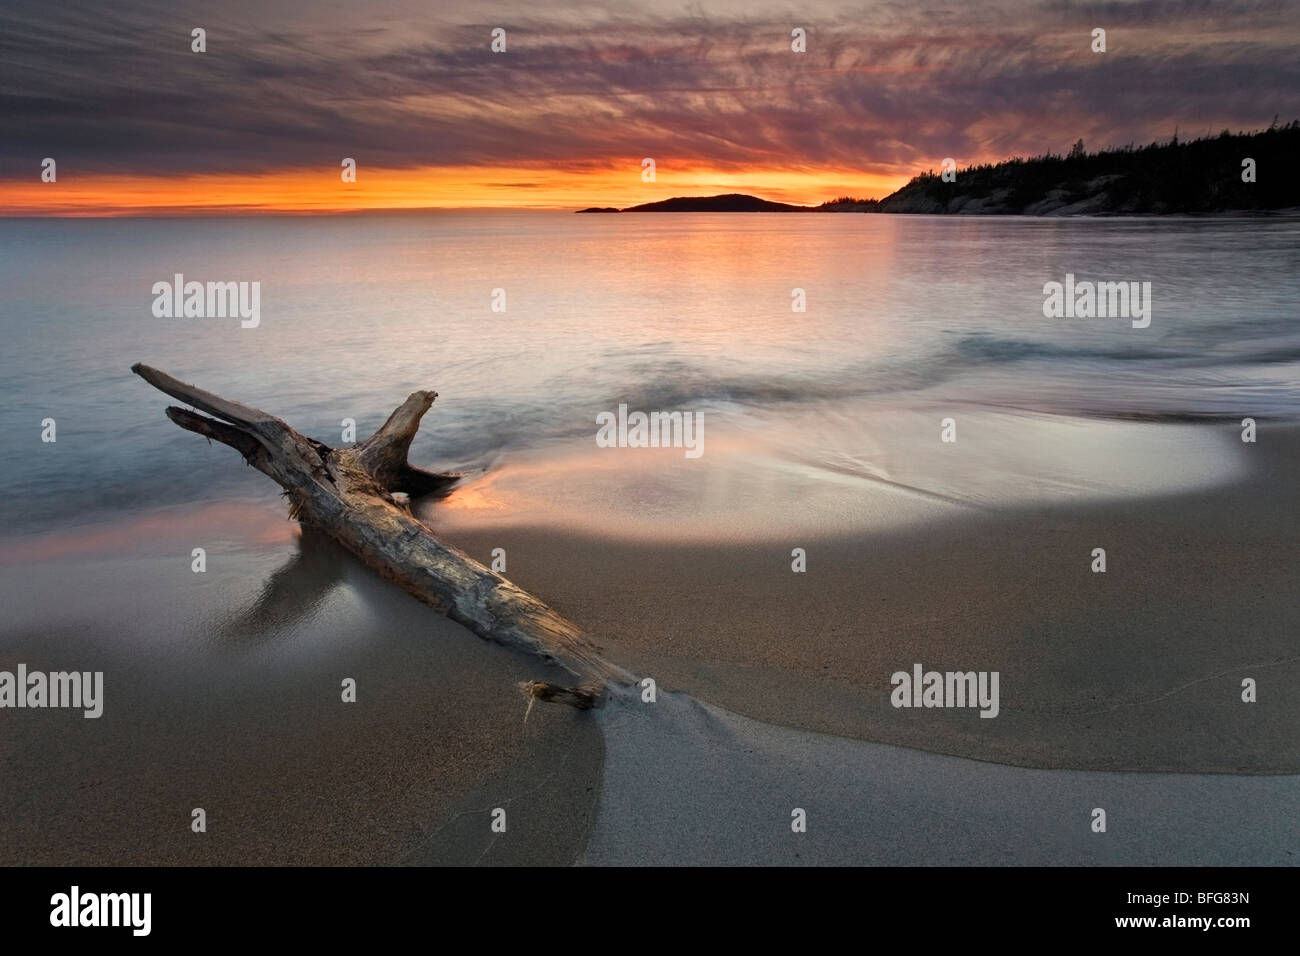 Sunset at Sandy Beach, on the shore of Lake Superior, Ontario, Canada - Stock Image